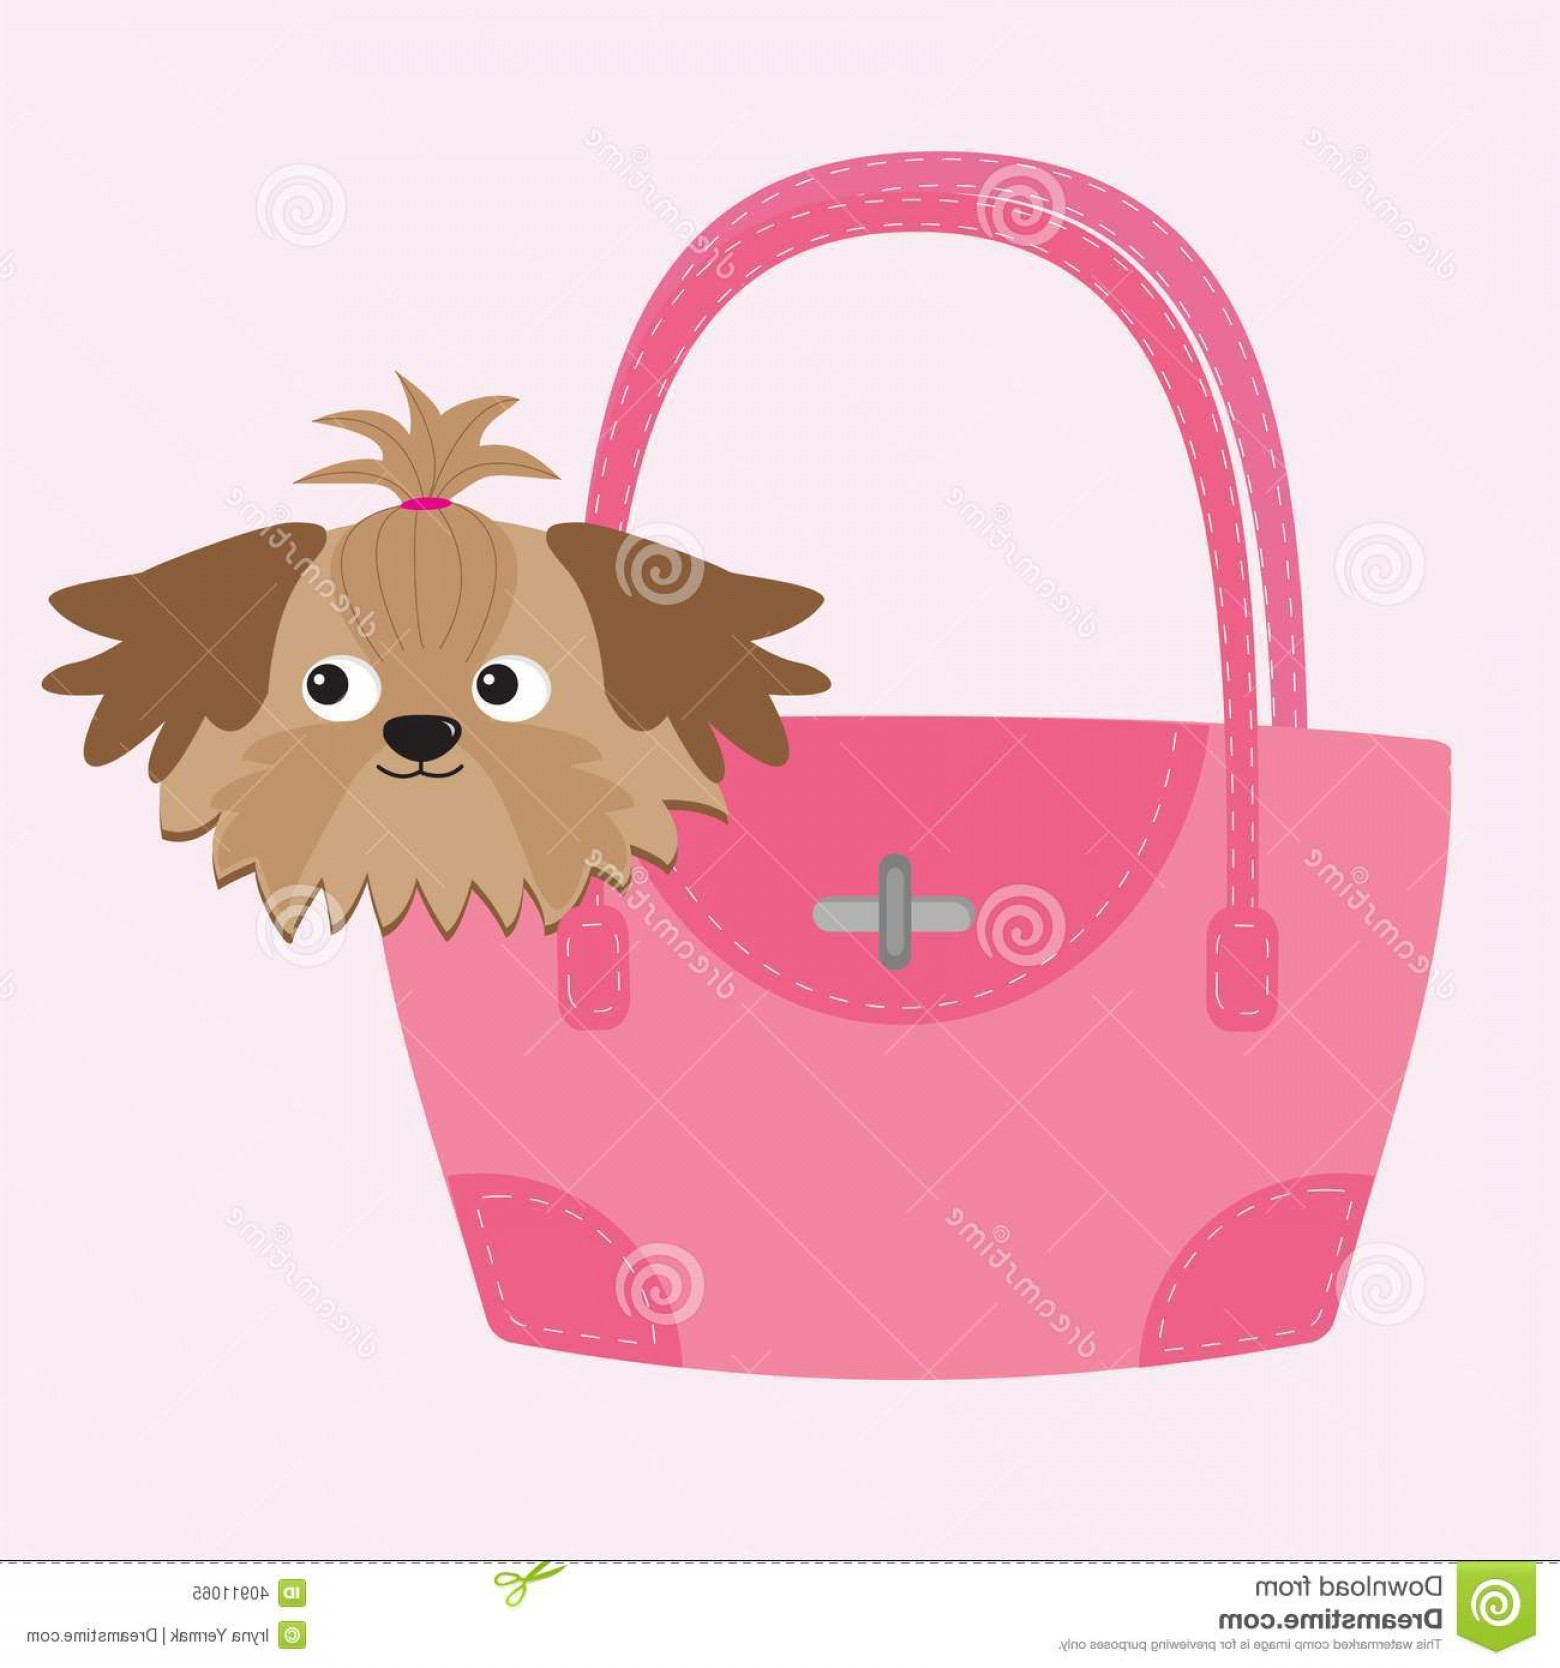 Shih Tzu Vector Siluete: Stock Illustration Little Glamour Tan Shih Tzu Dog Pink Bag Vector Illustration Image